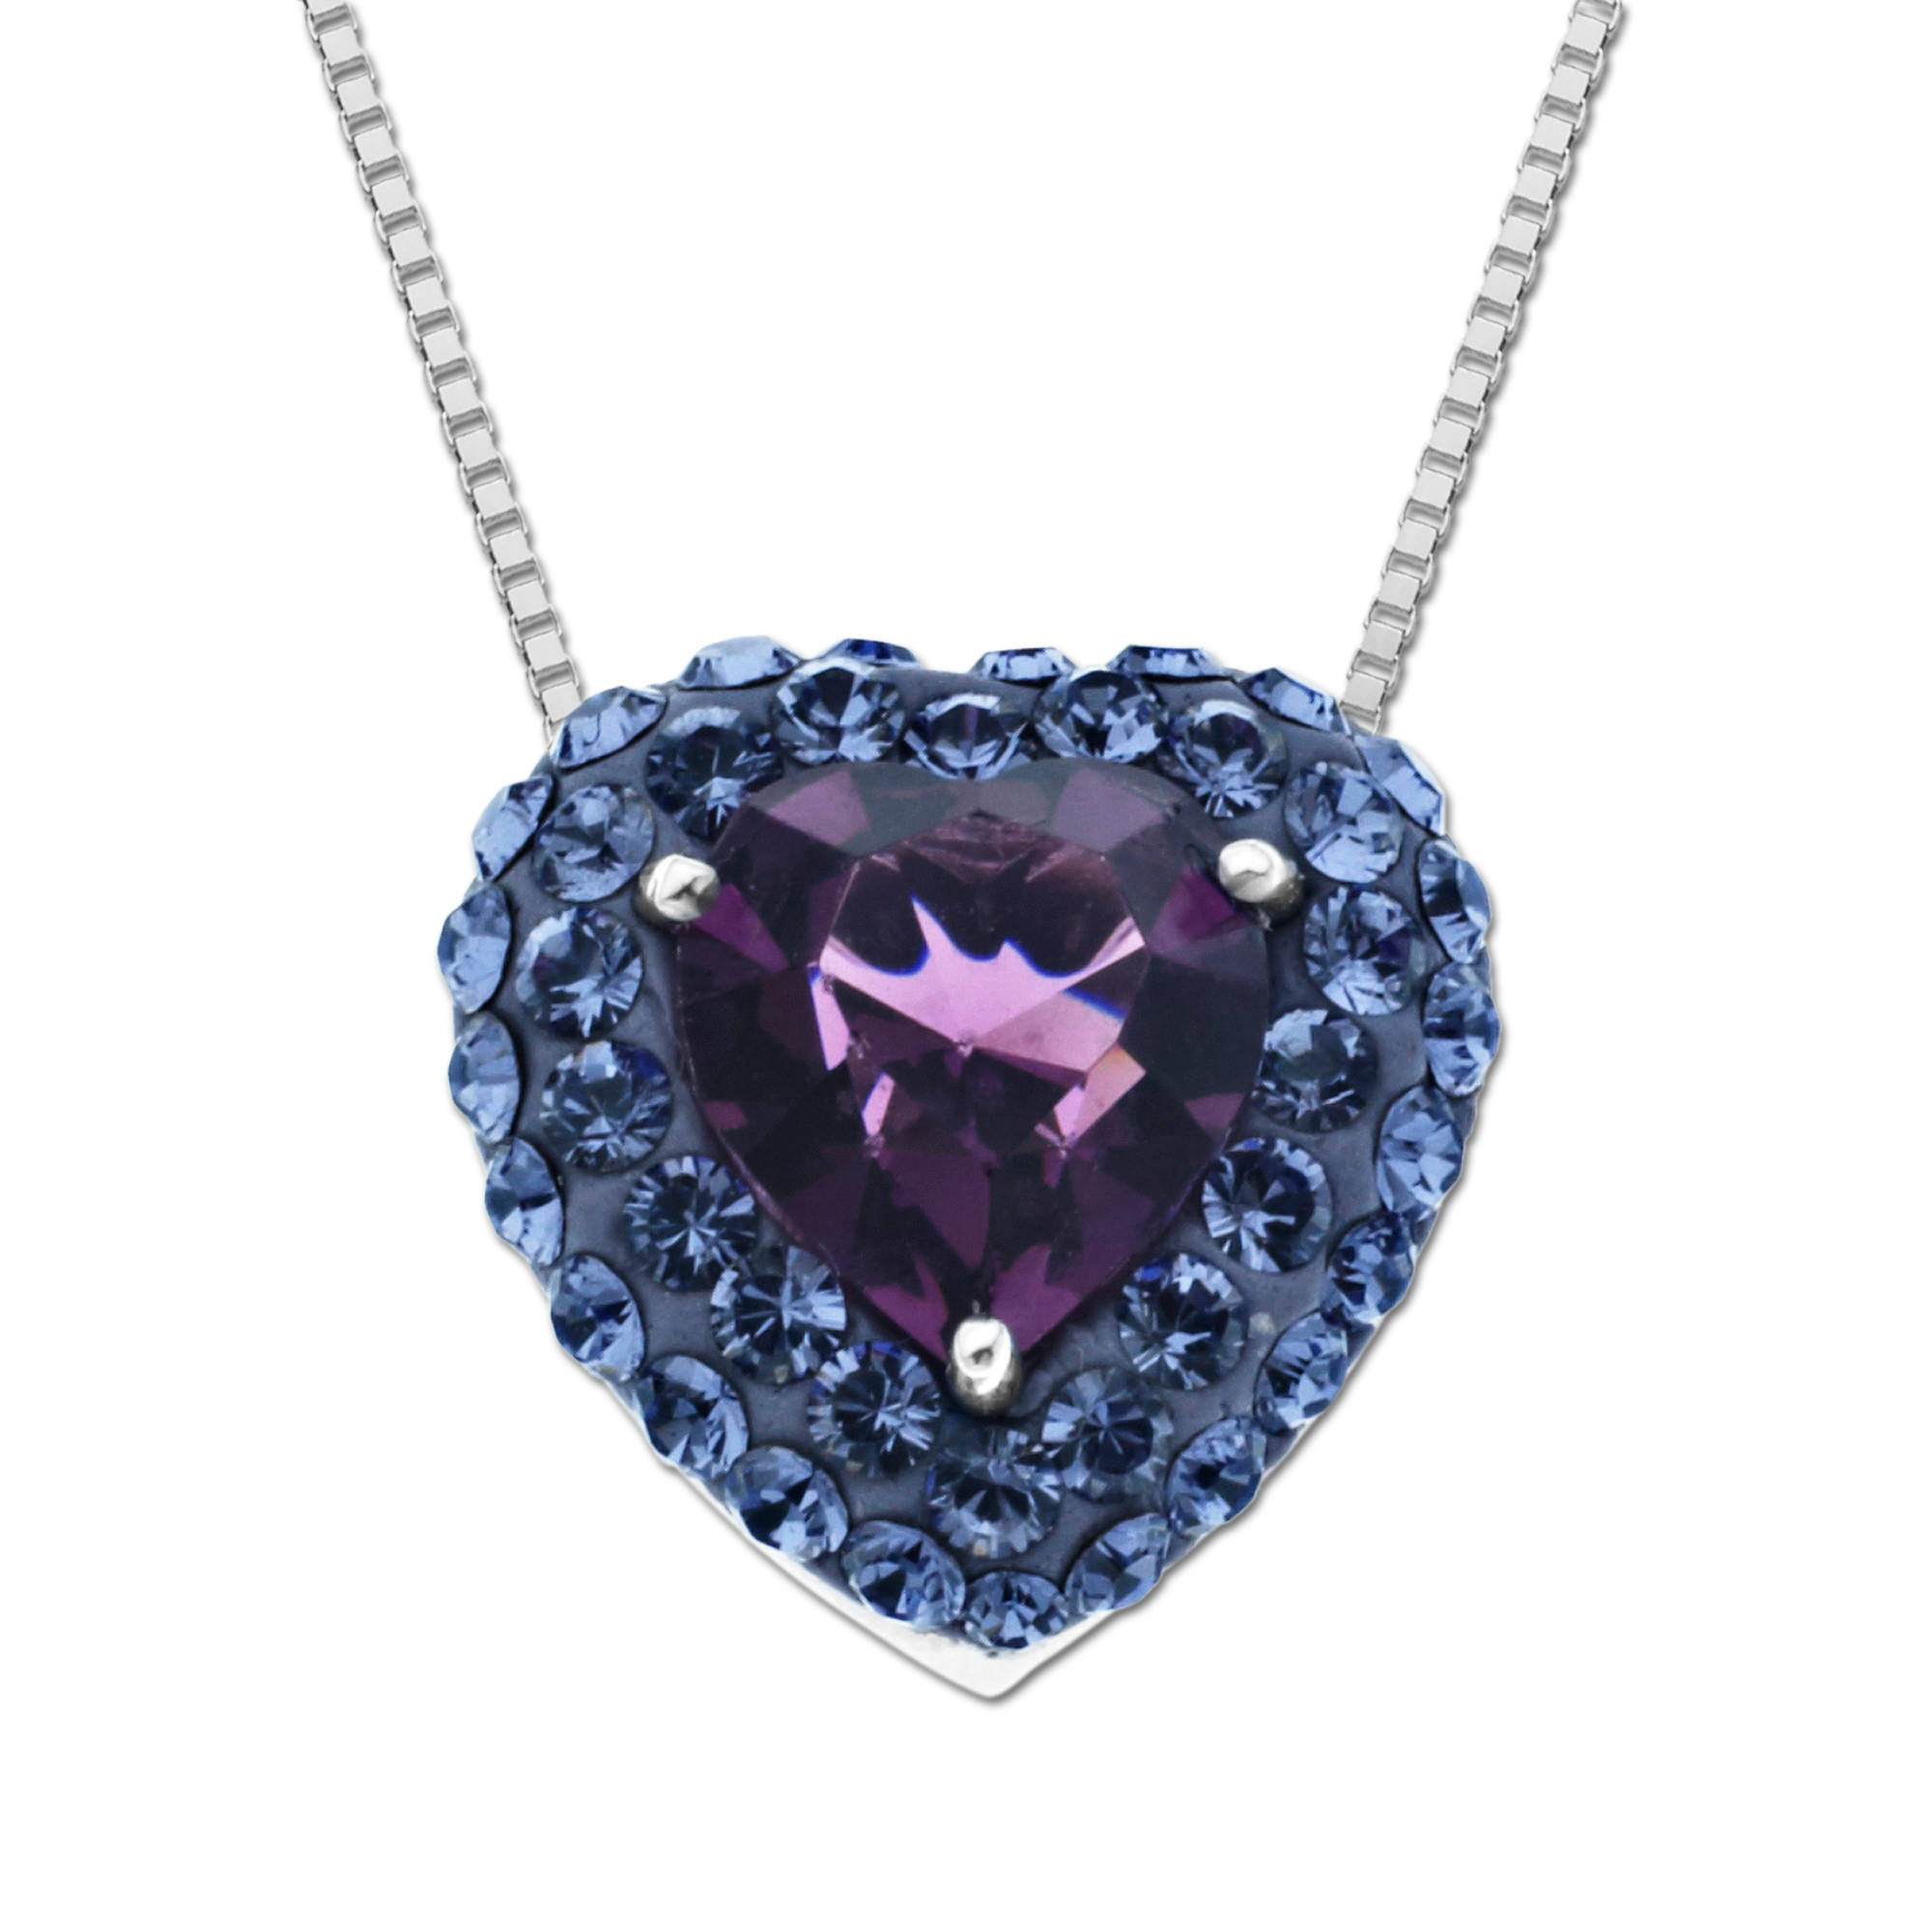 Luminesse Sterling Silver Purple Heart Pendant made with Swarovski Elements, 18